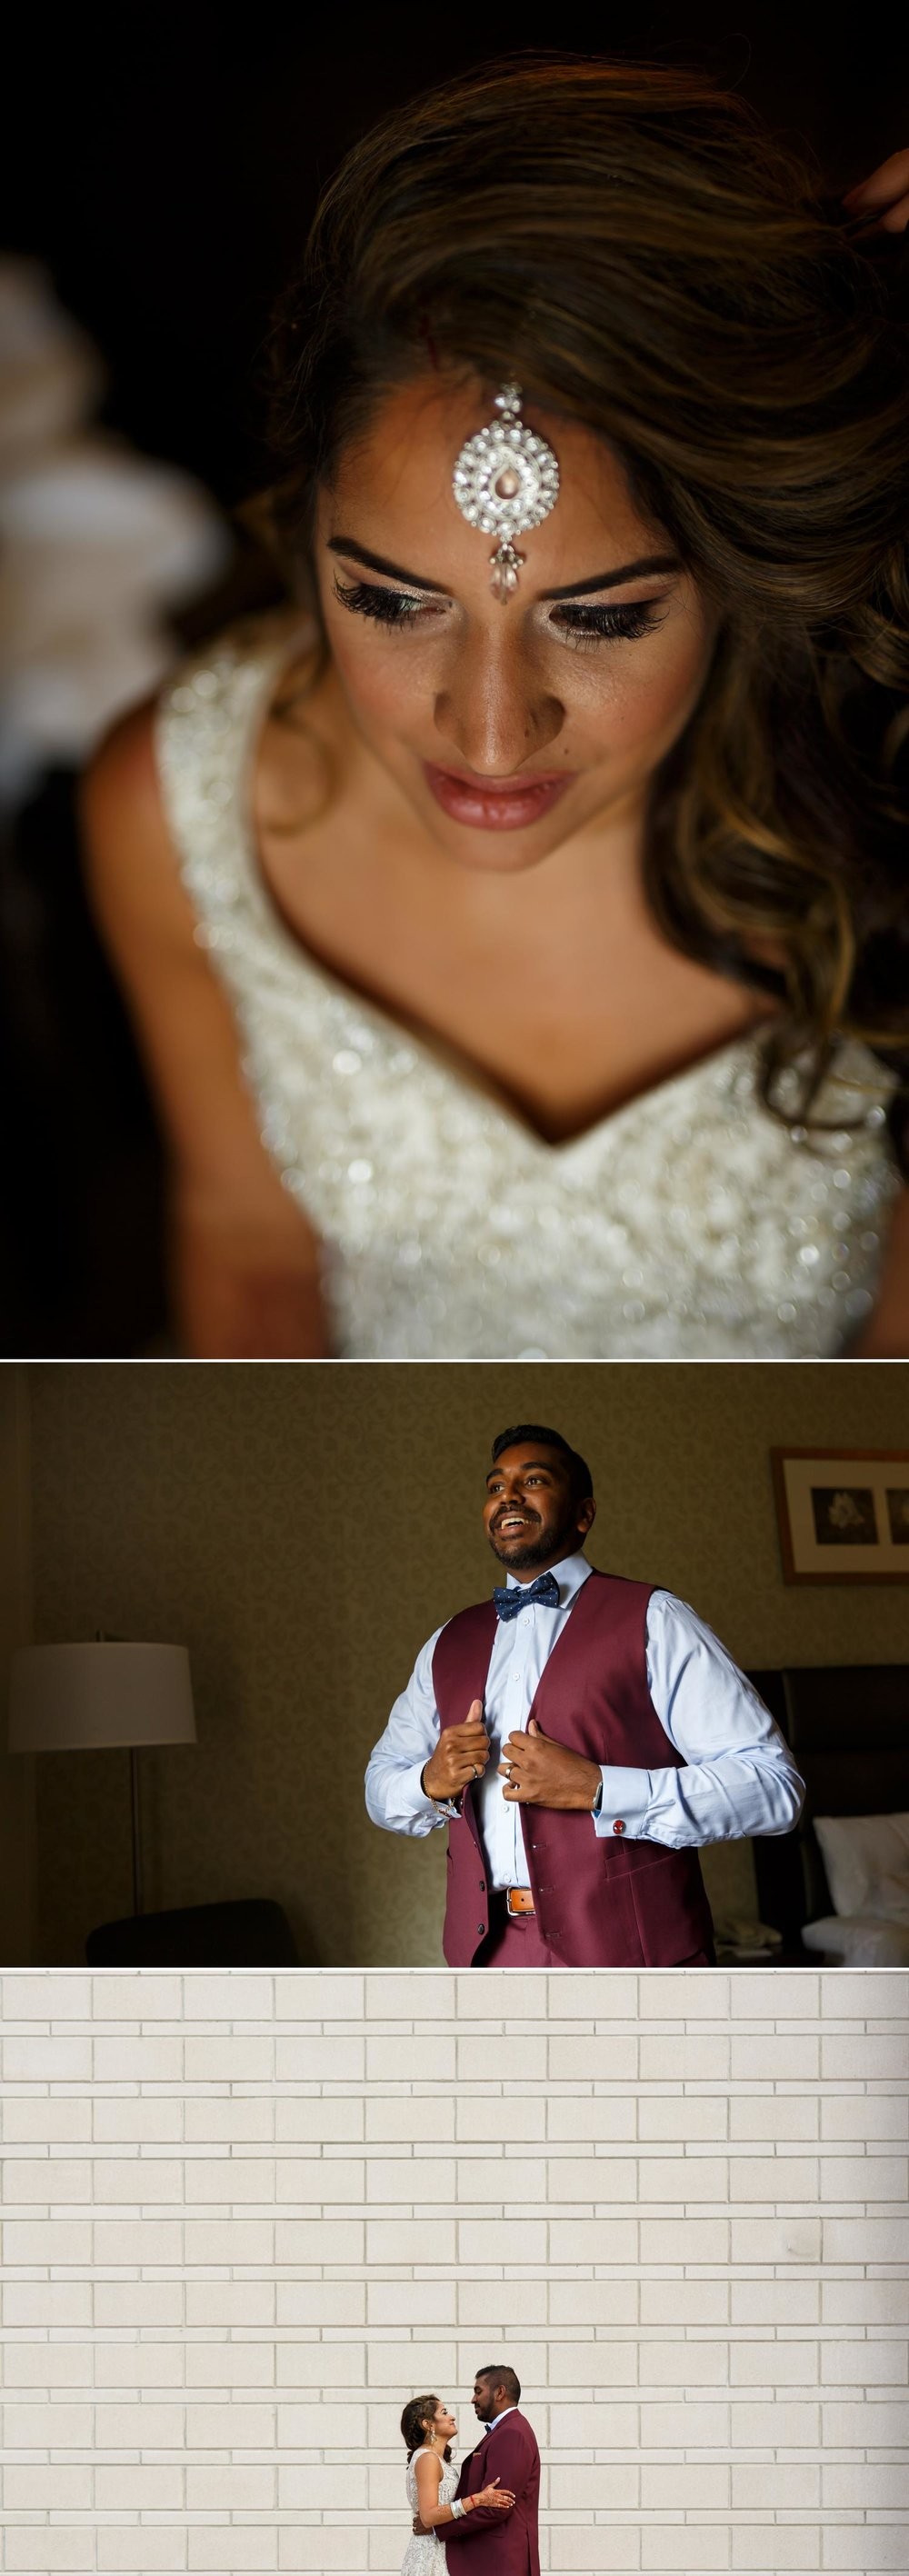 photos of an indian bride and groom getting ready for their wedding reception